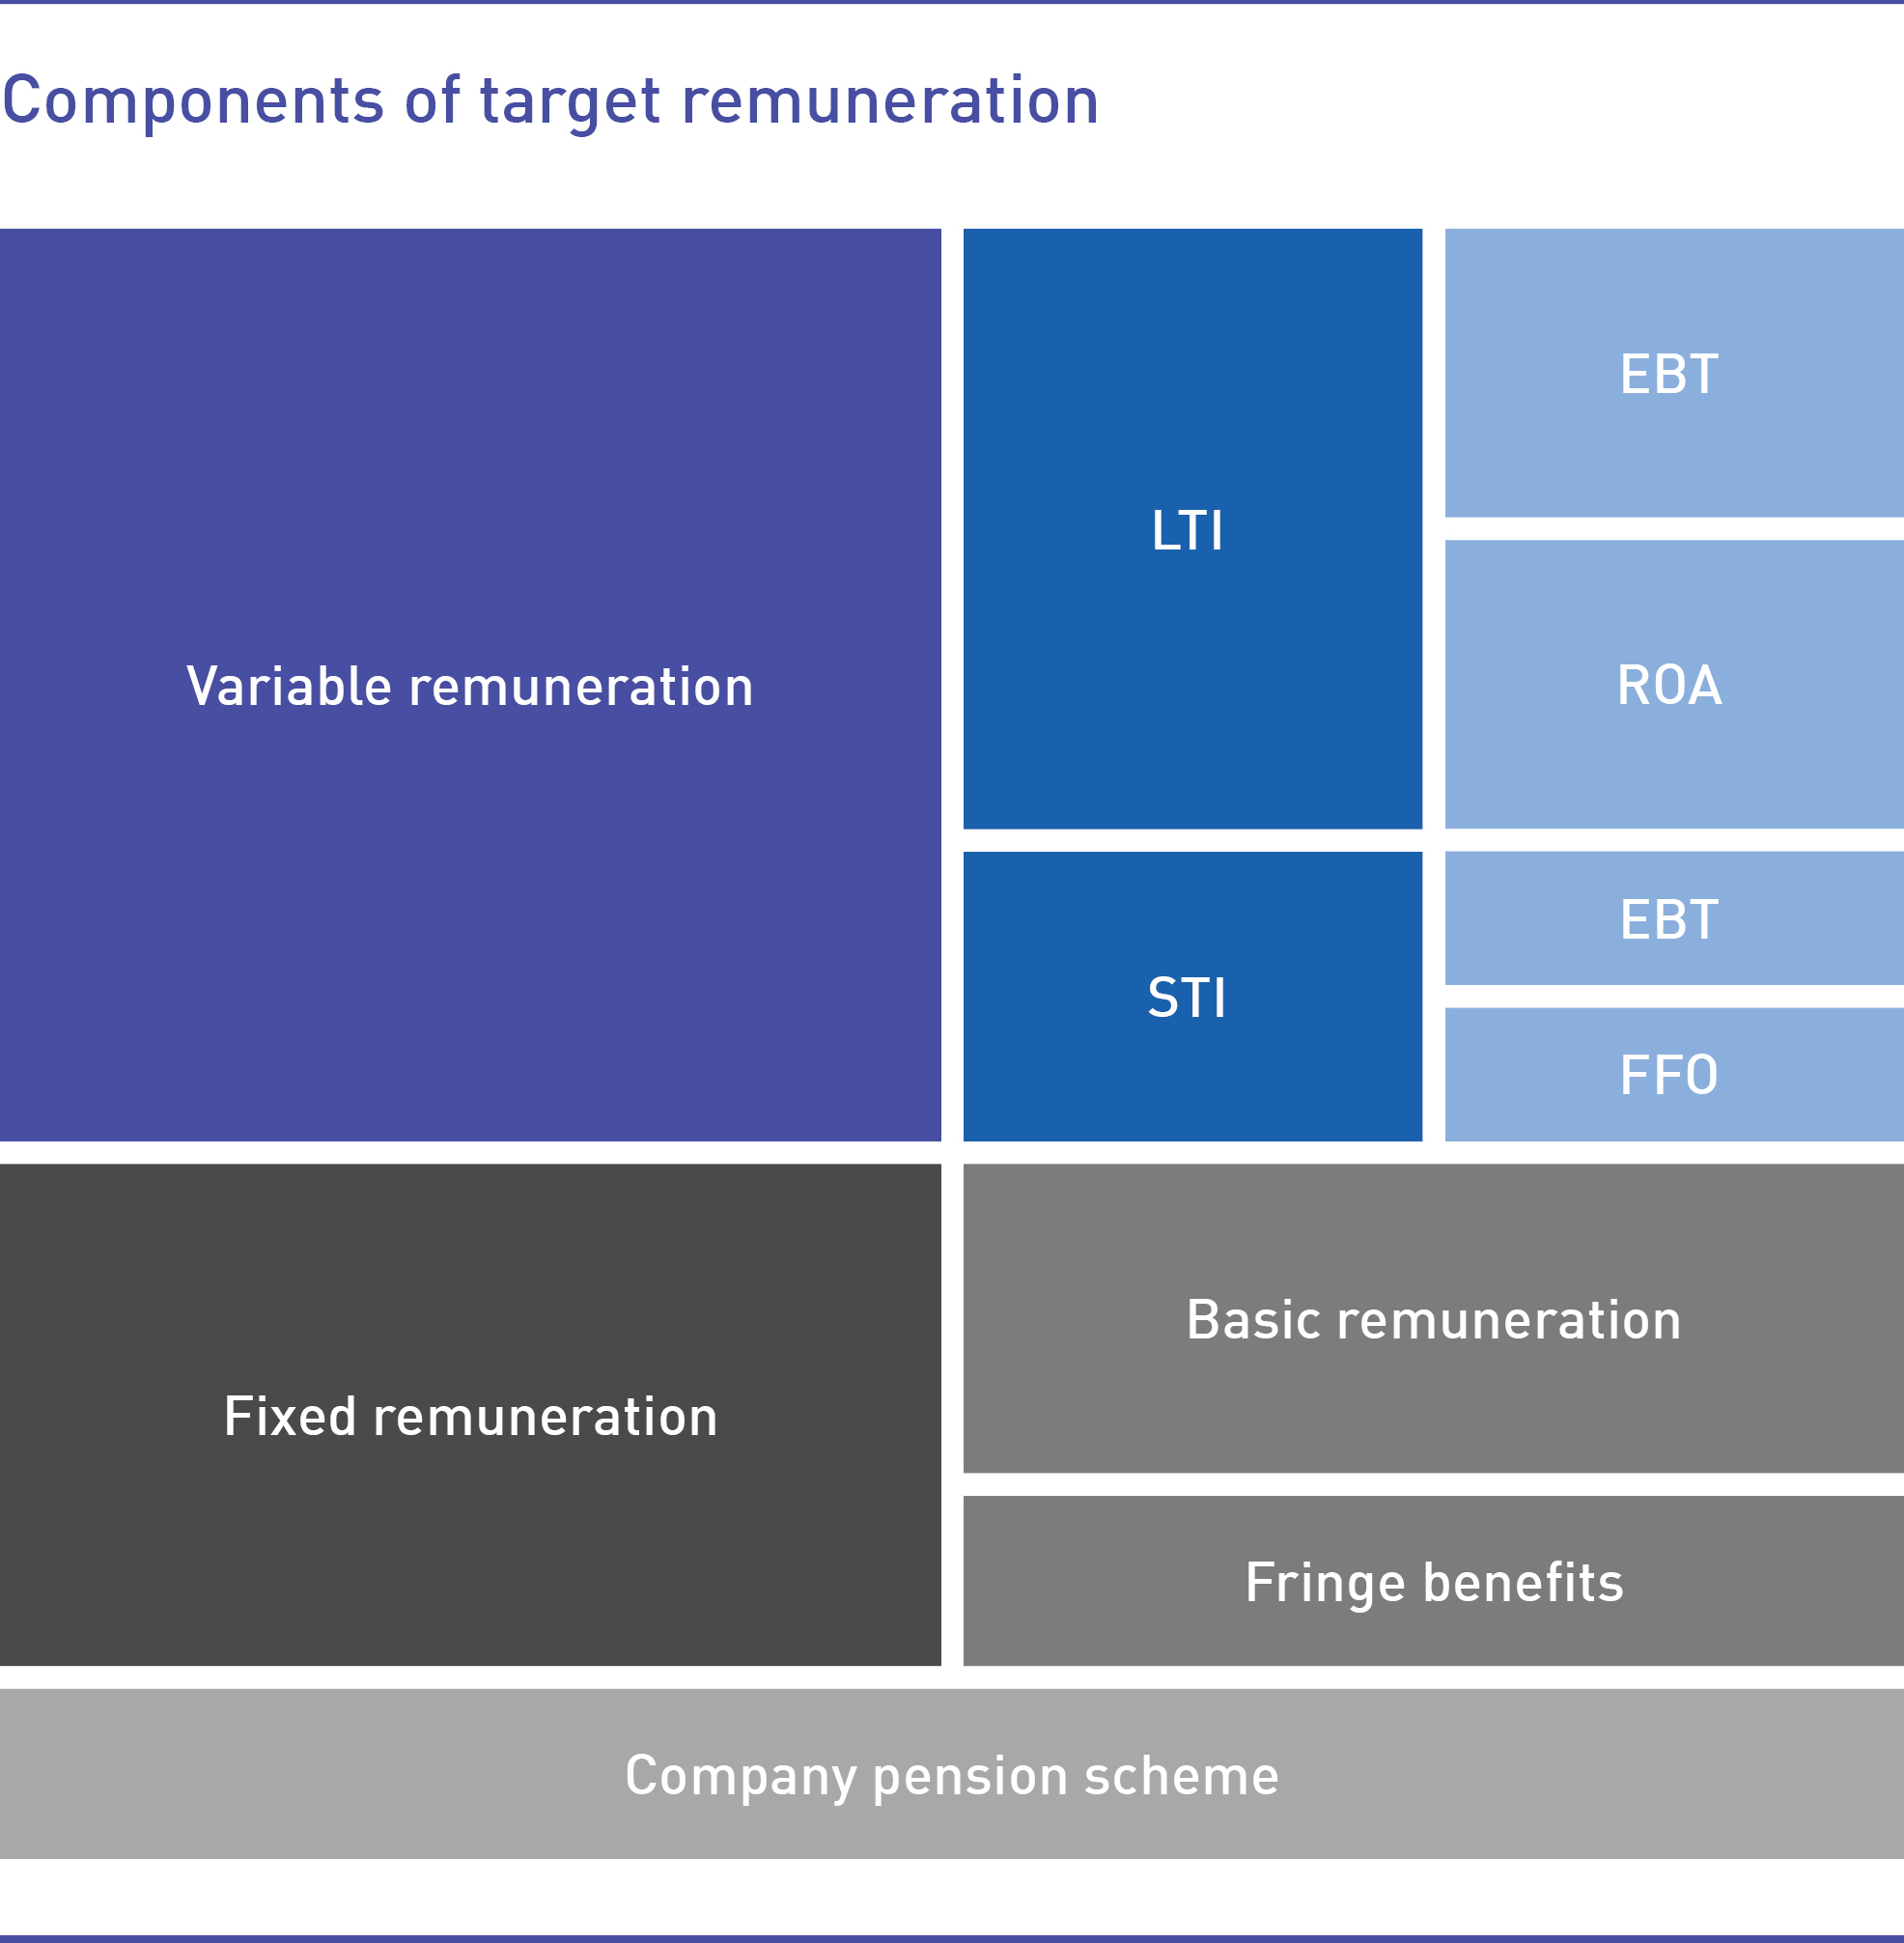 Components of the target remuneration